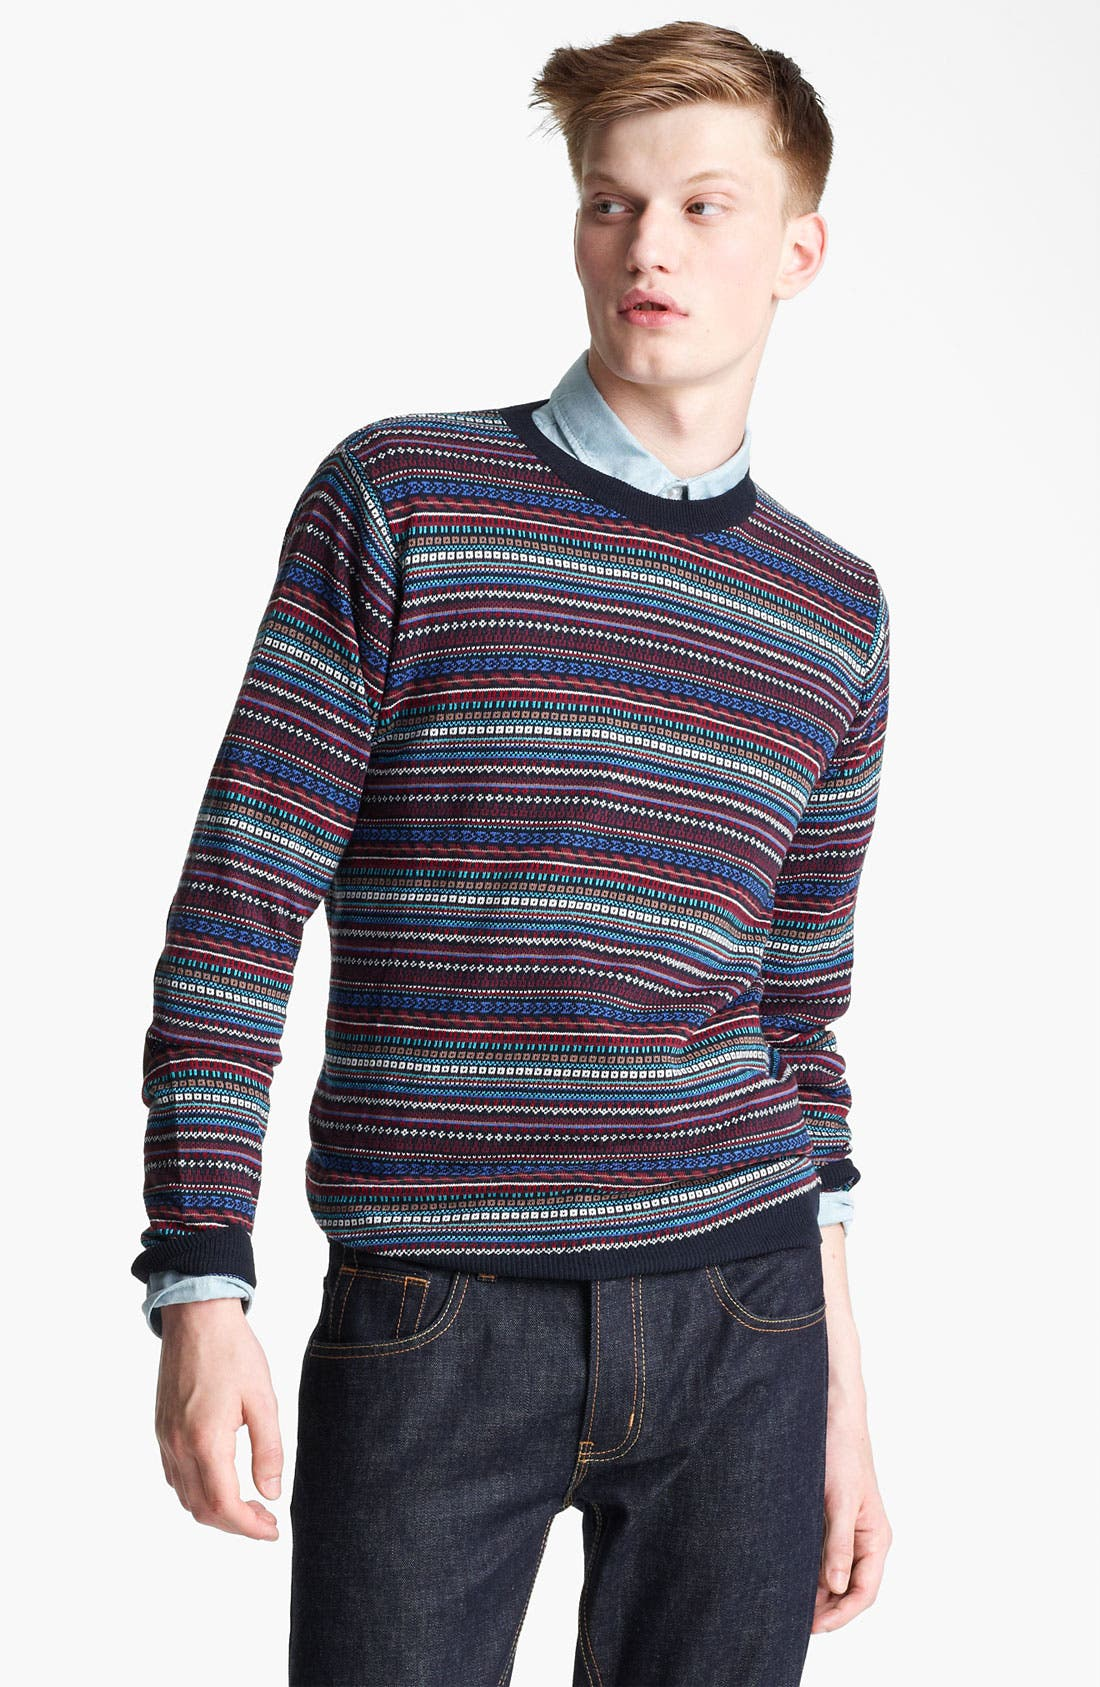 Alternate Image 1 Selected - Topman Pattern Knit Crewneck Sweater